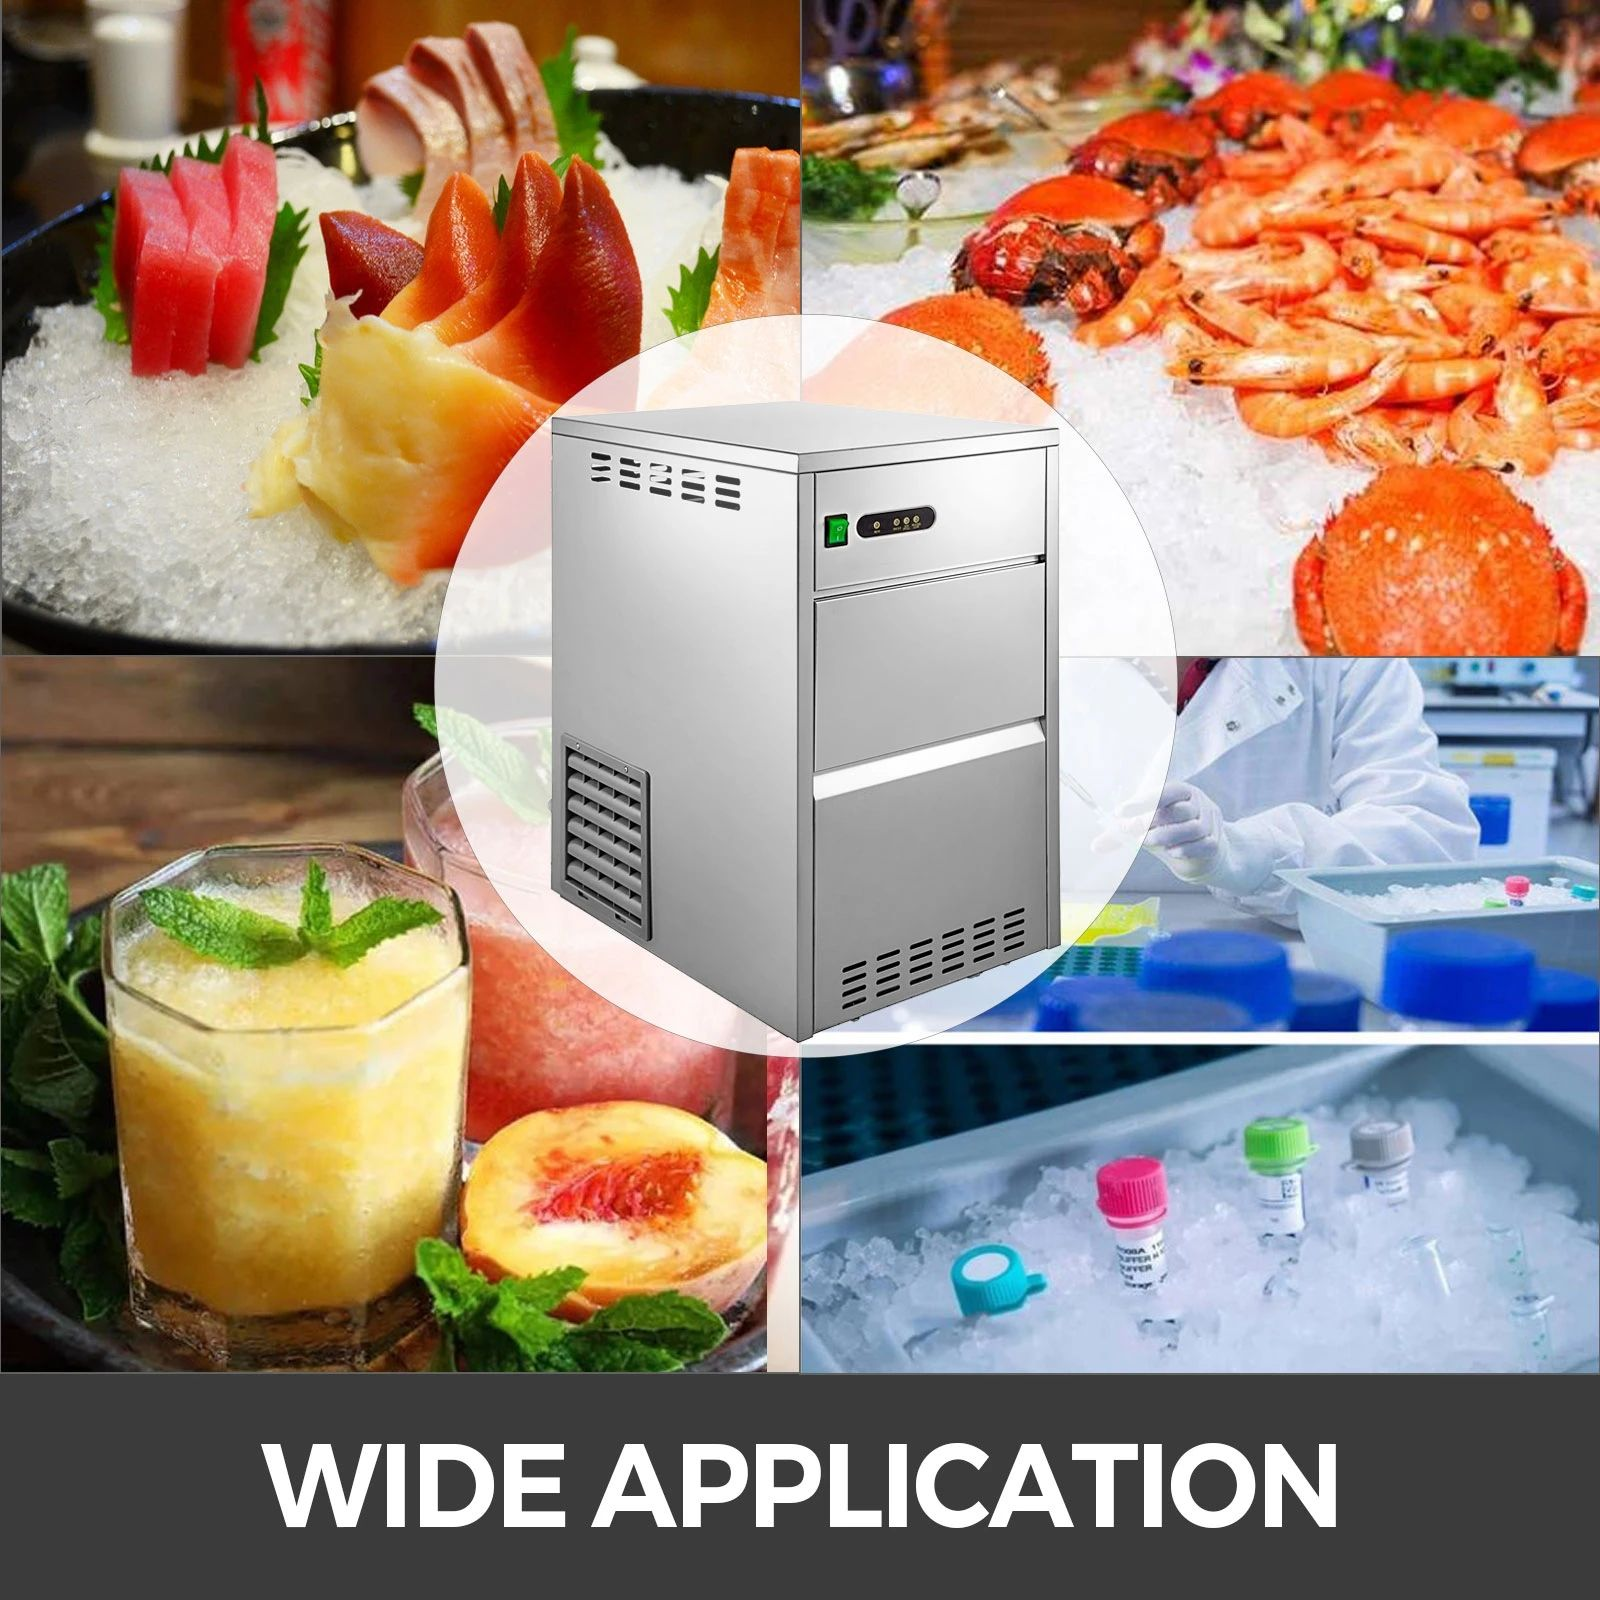 Full Stainless Steel Housing Flake Ice Maker Produces Small Particles Of Irregular Snow Ice Countertop Or Freestanding Applicati Food Industry Food Grade Food